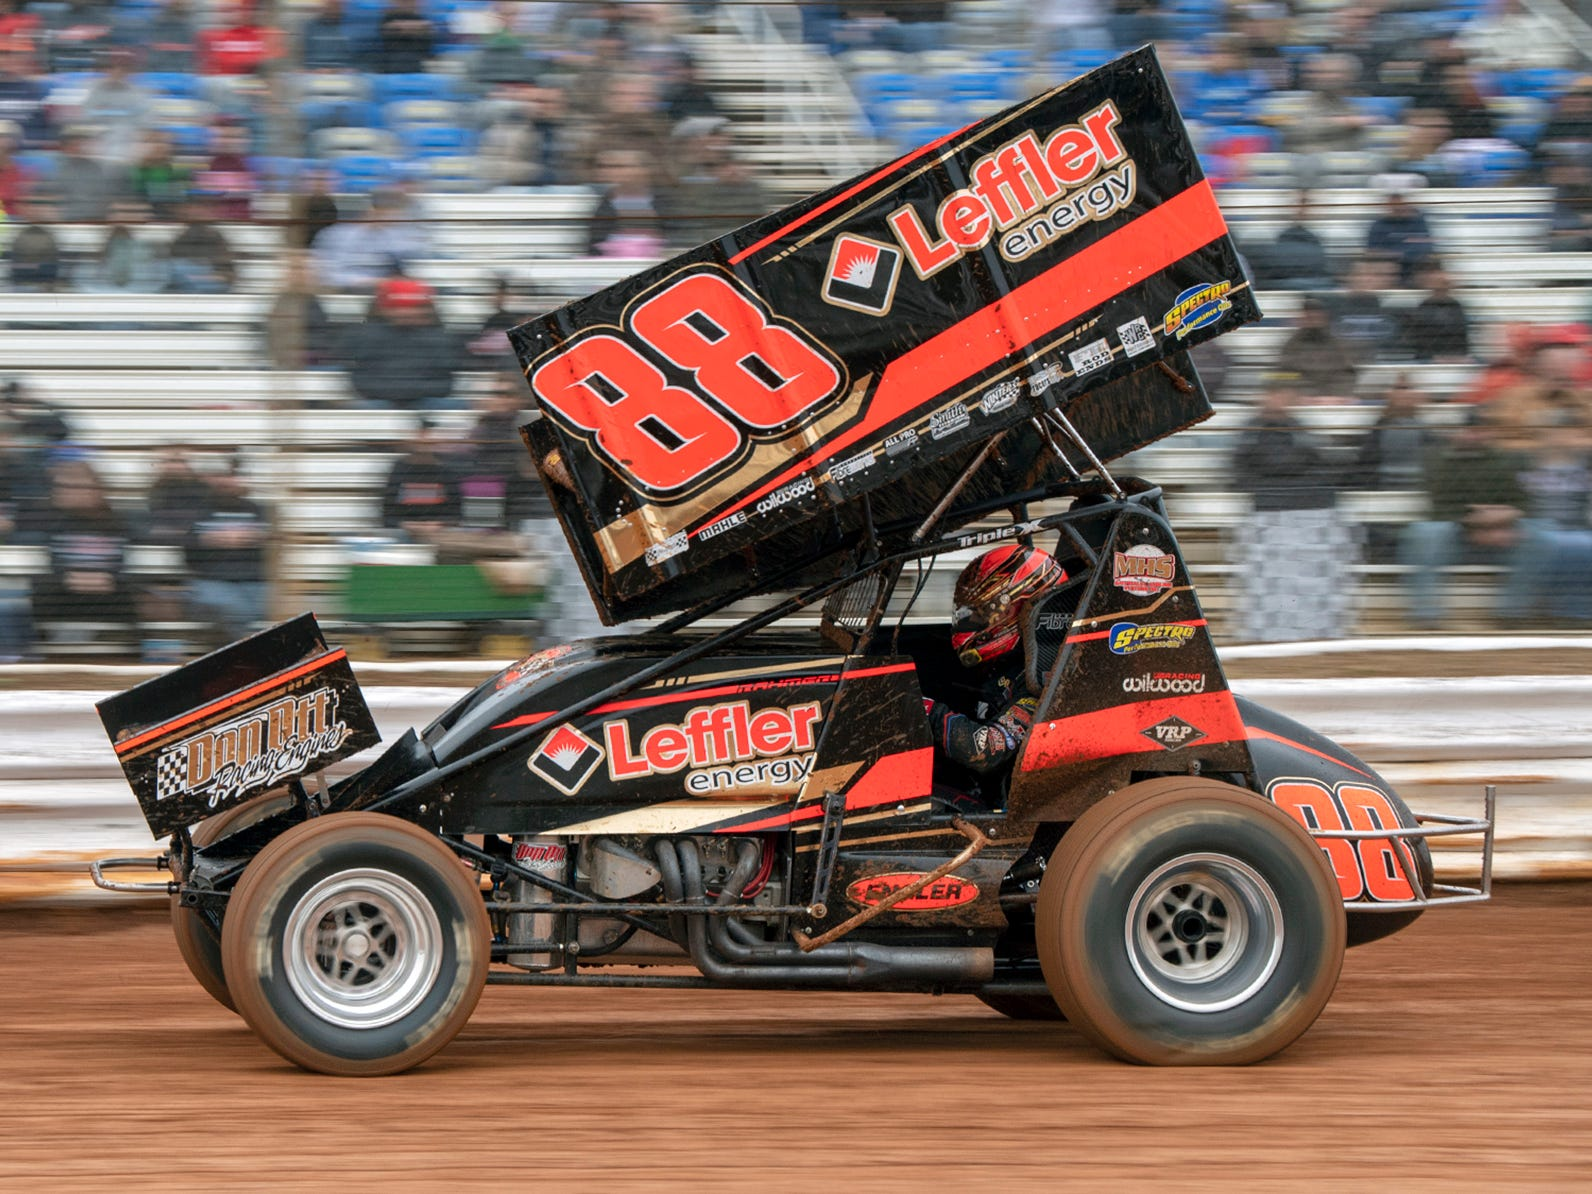 The 88 car driven by Brandon Rahmer streaks past the fans during the Lincoln Speedway Ice Breaker 30 on Sunday near Abbottstown.